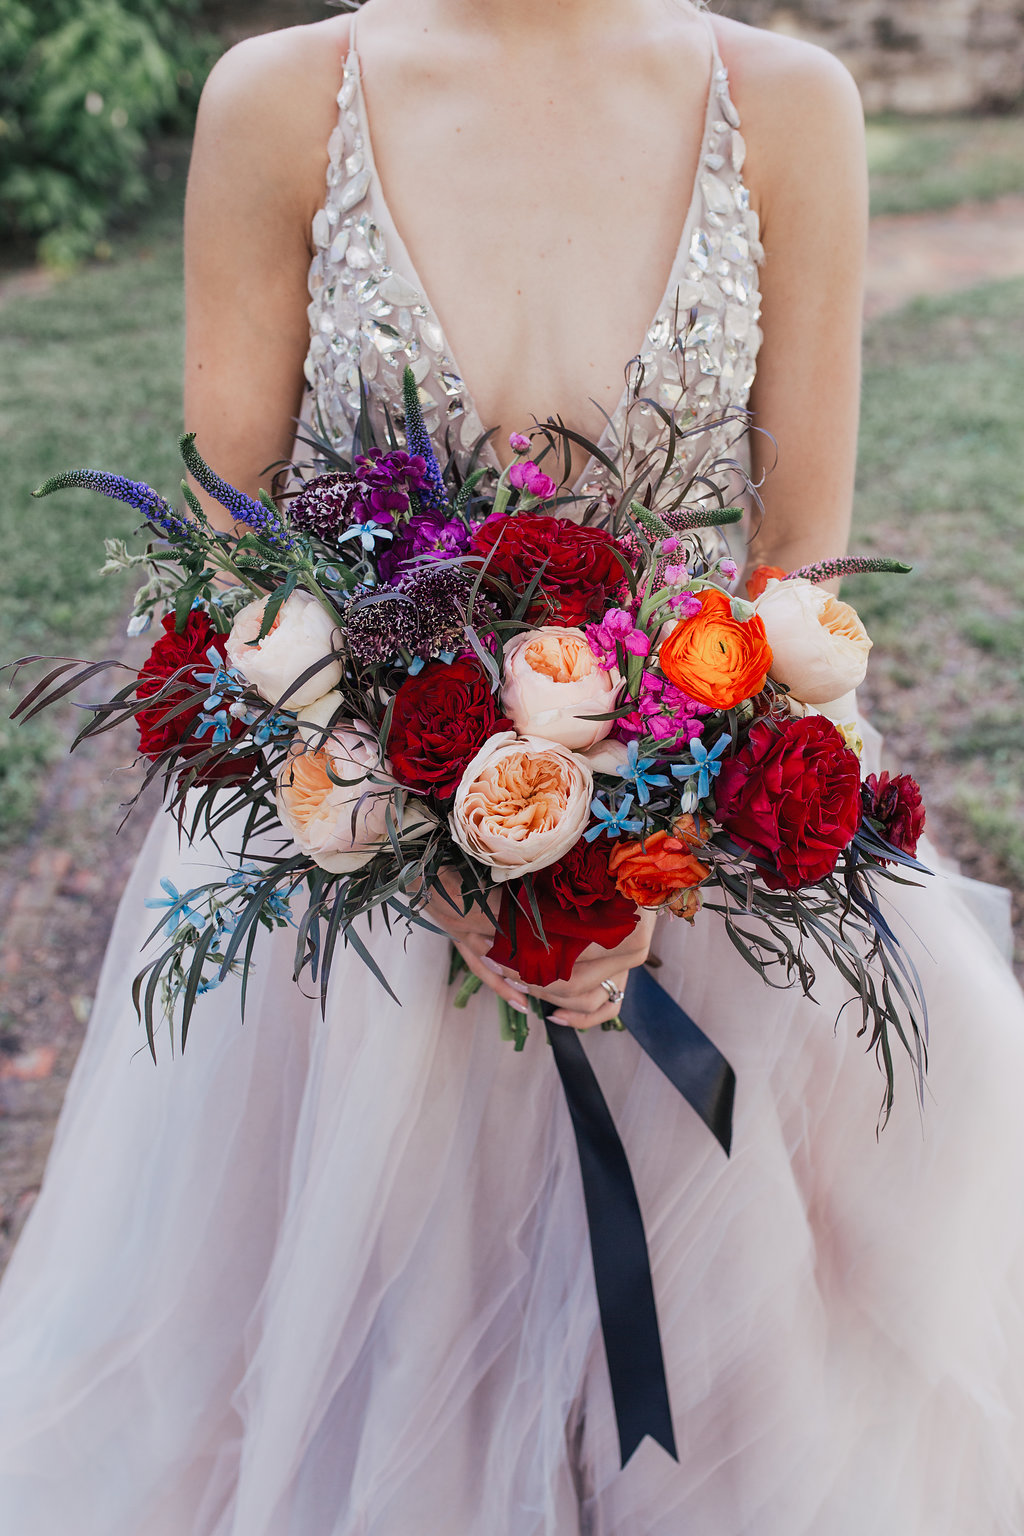 red and orange bouquets - photo by Alondra Vega Photography https://ruffledblog.com/jewel-toned-wedding-ideas-with-a-surprise-proposal